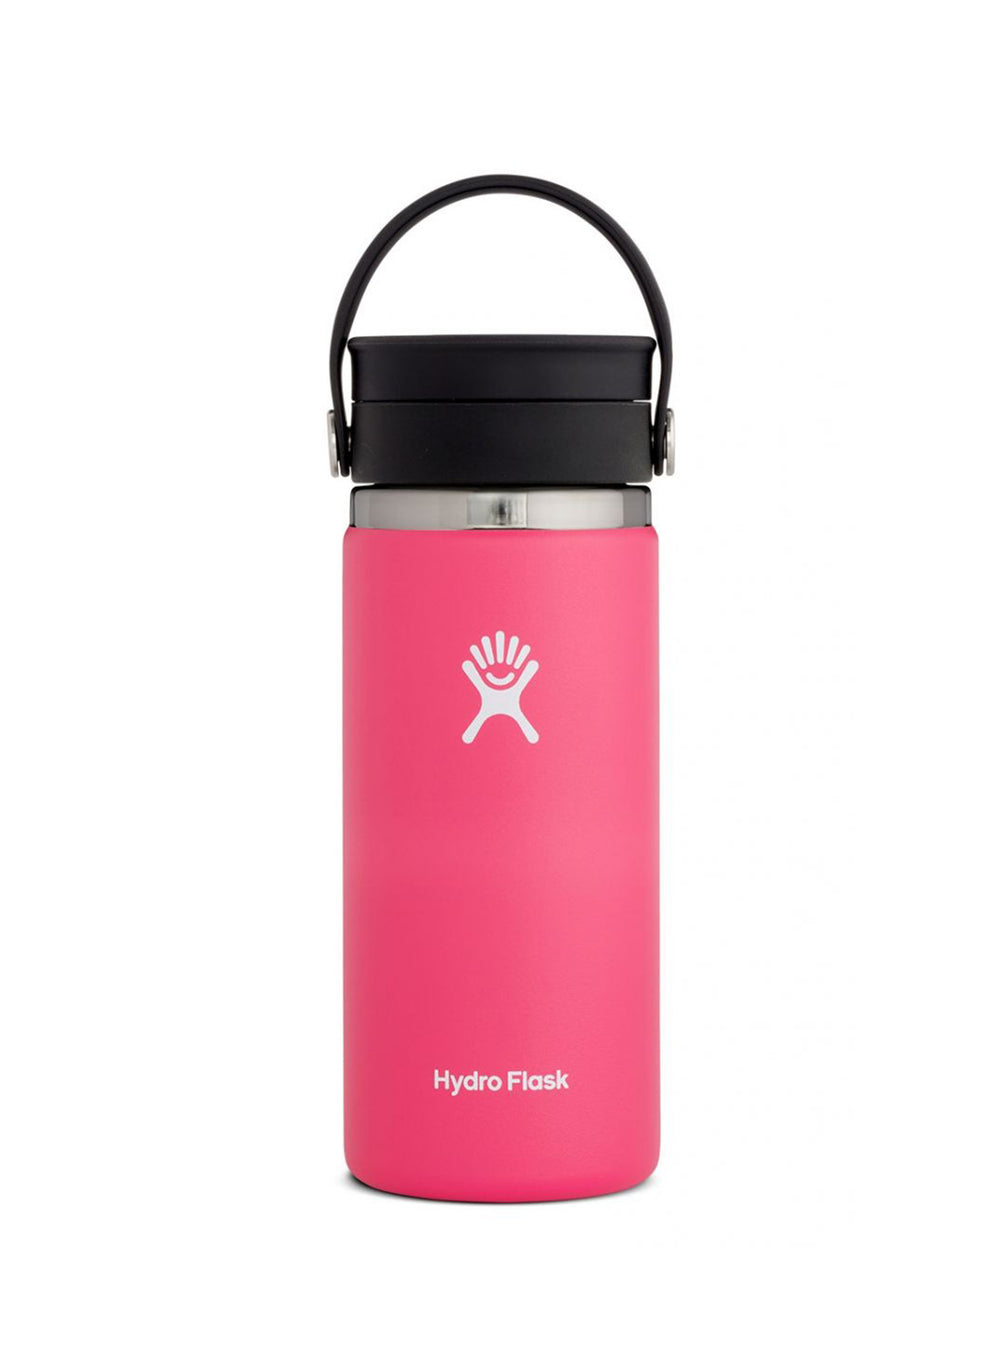 Hydro Flask 16 oz Wide Mouth with Flex Sip Lid